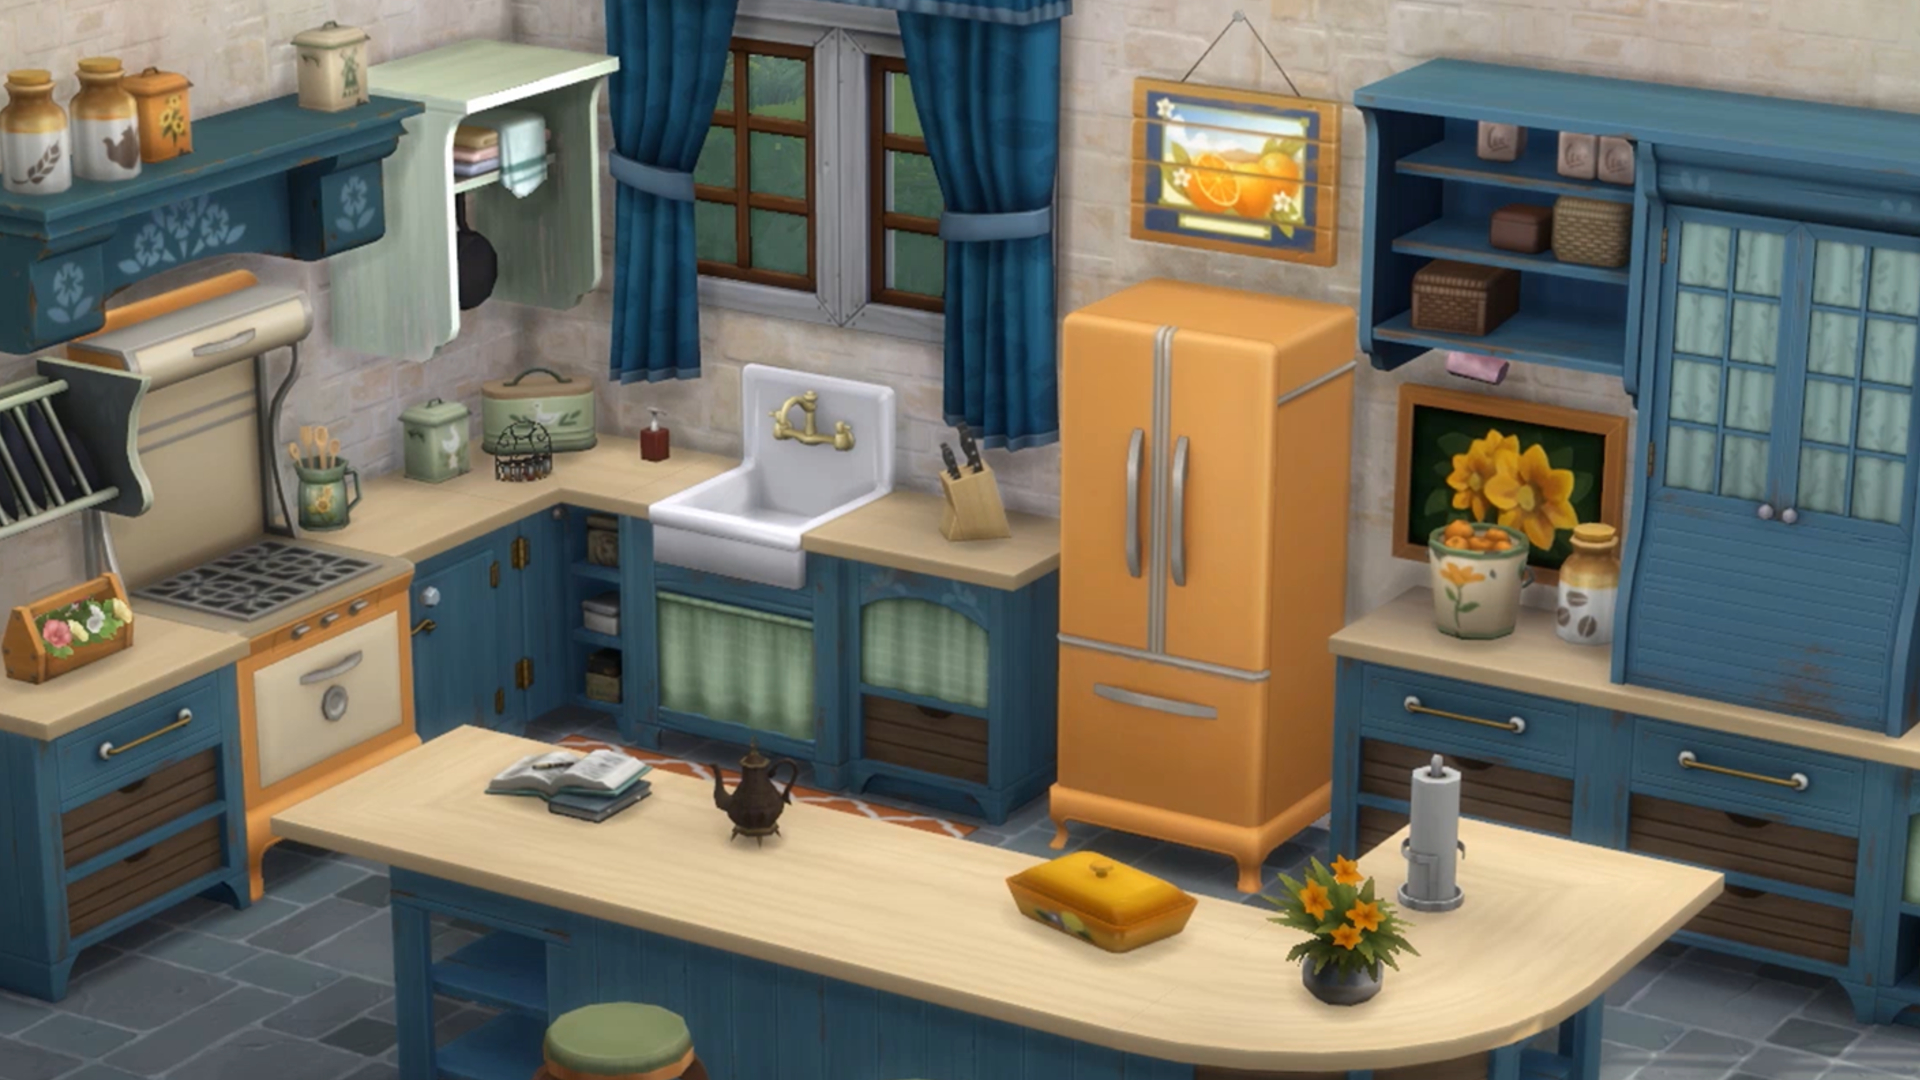 The Sims 4 Kits - Country Kitchen